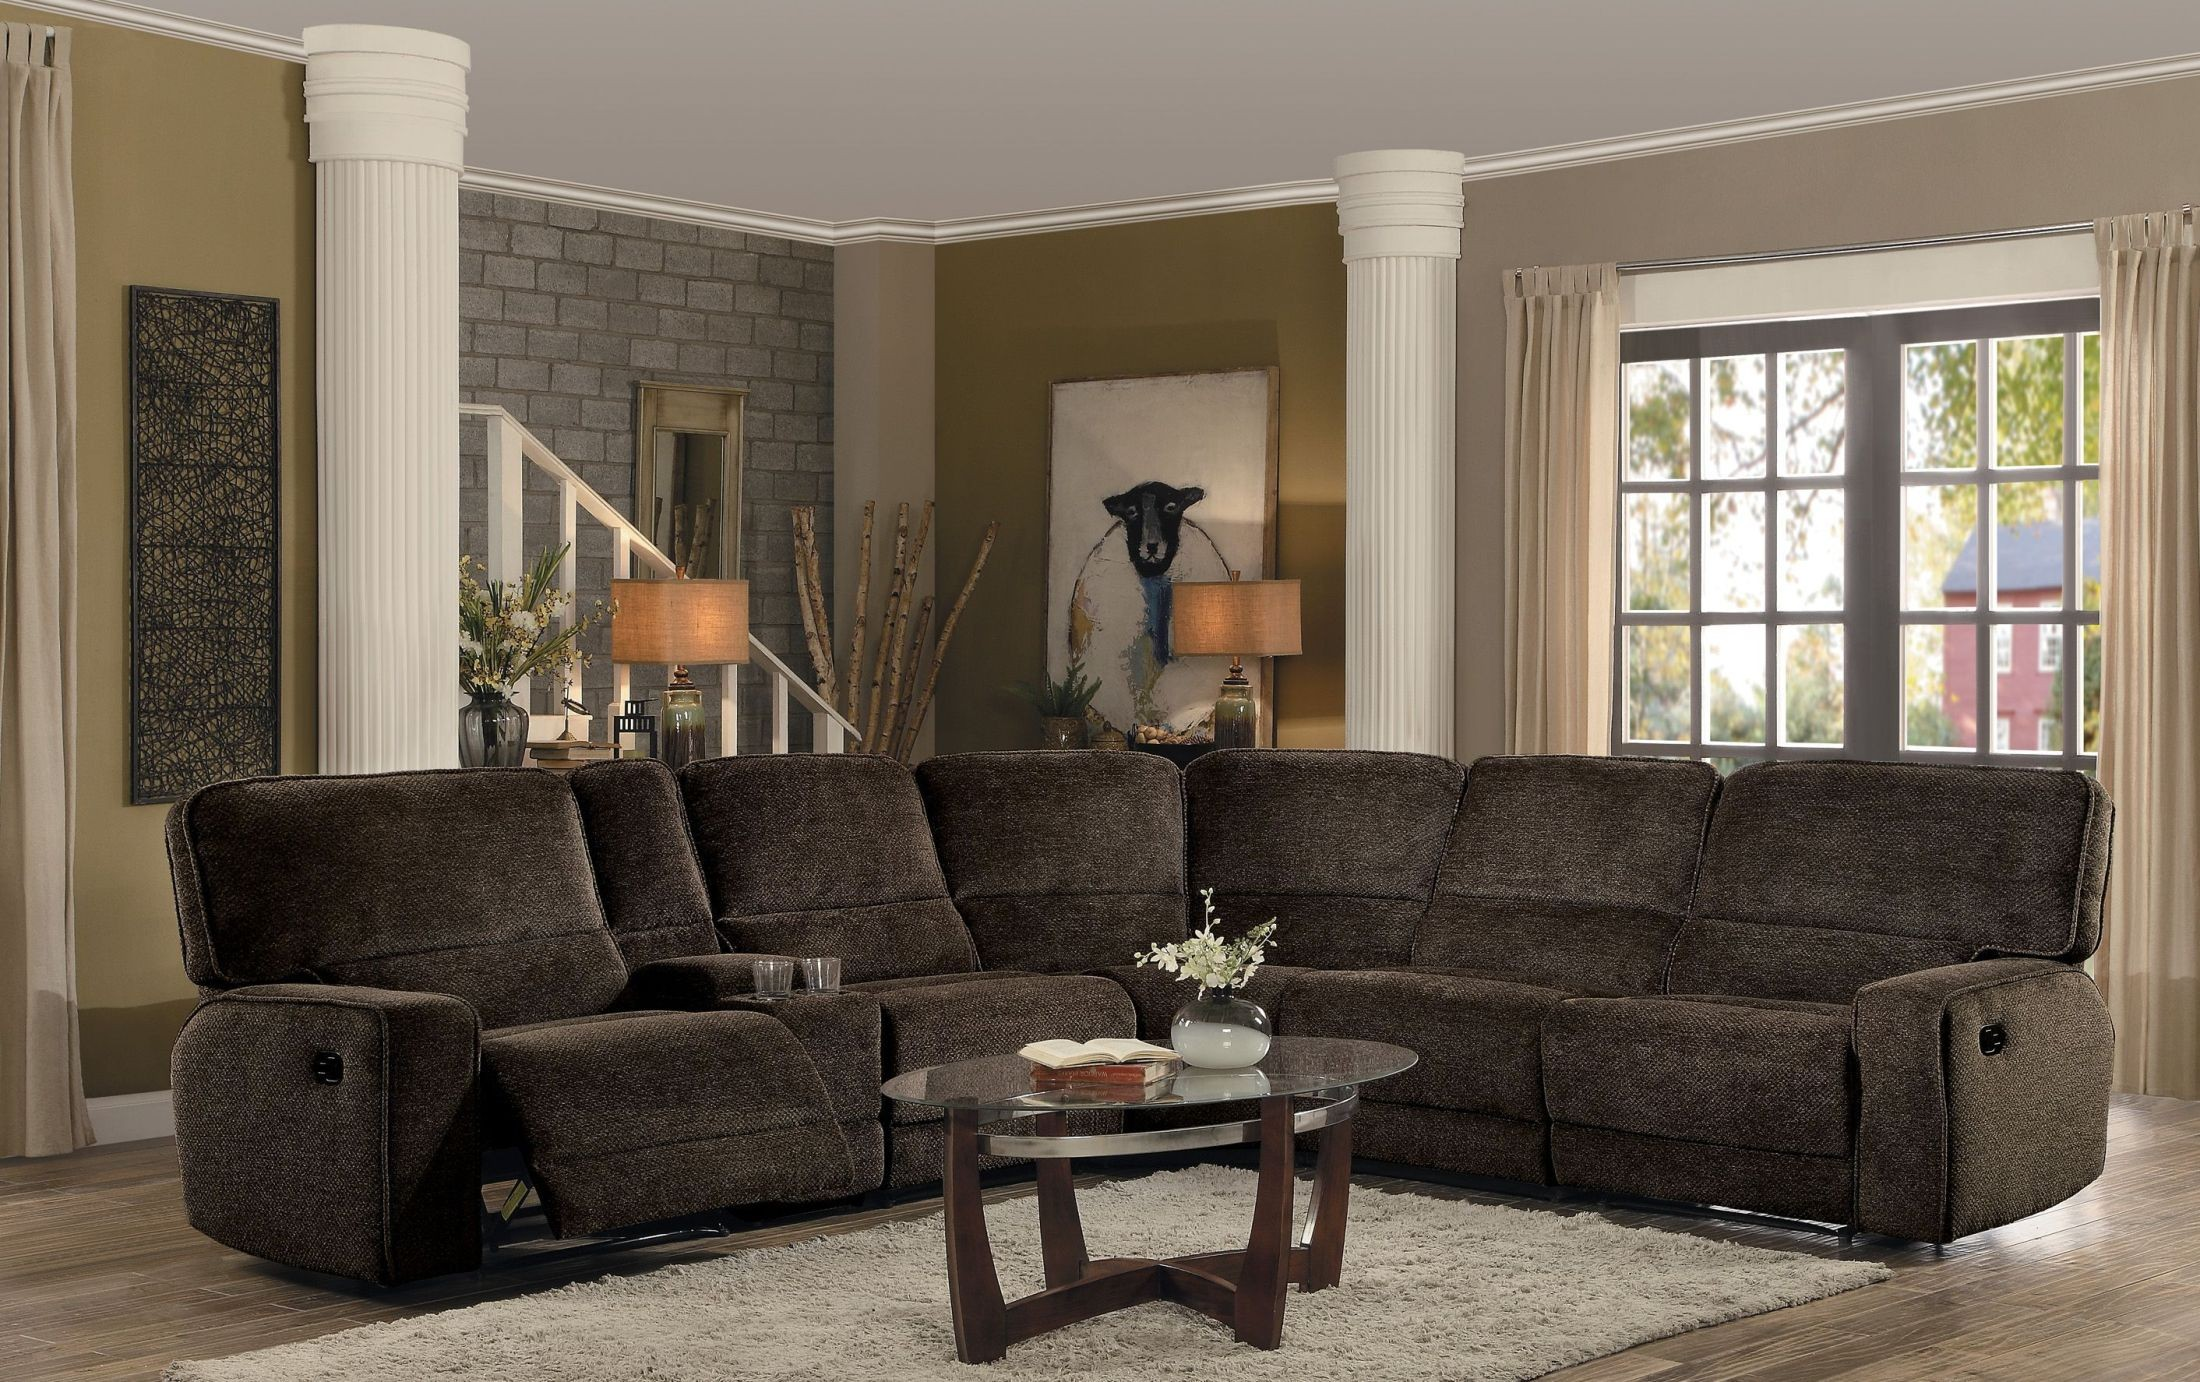 Shreveport Brown Reclining Sectional From Homelegance Coleman  # Muebles Nicasio Orono